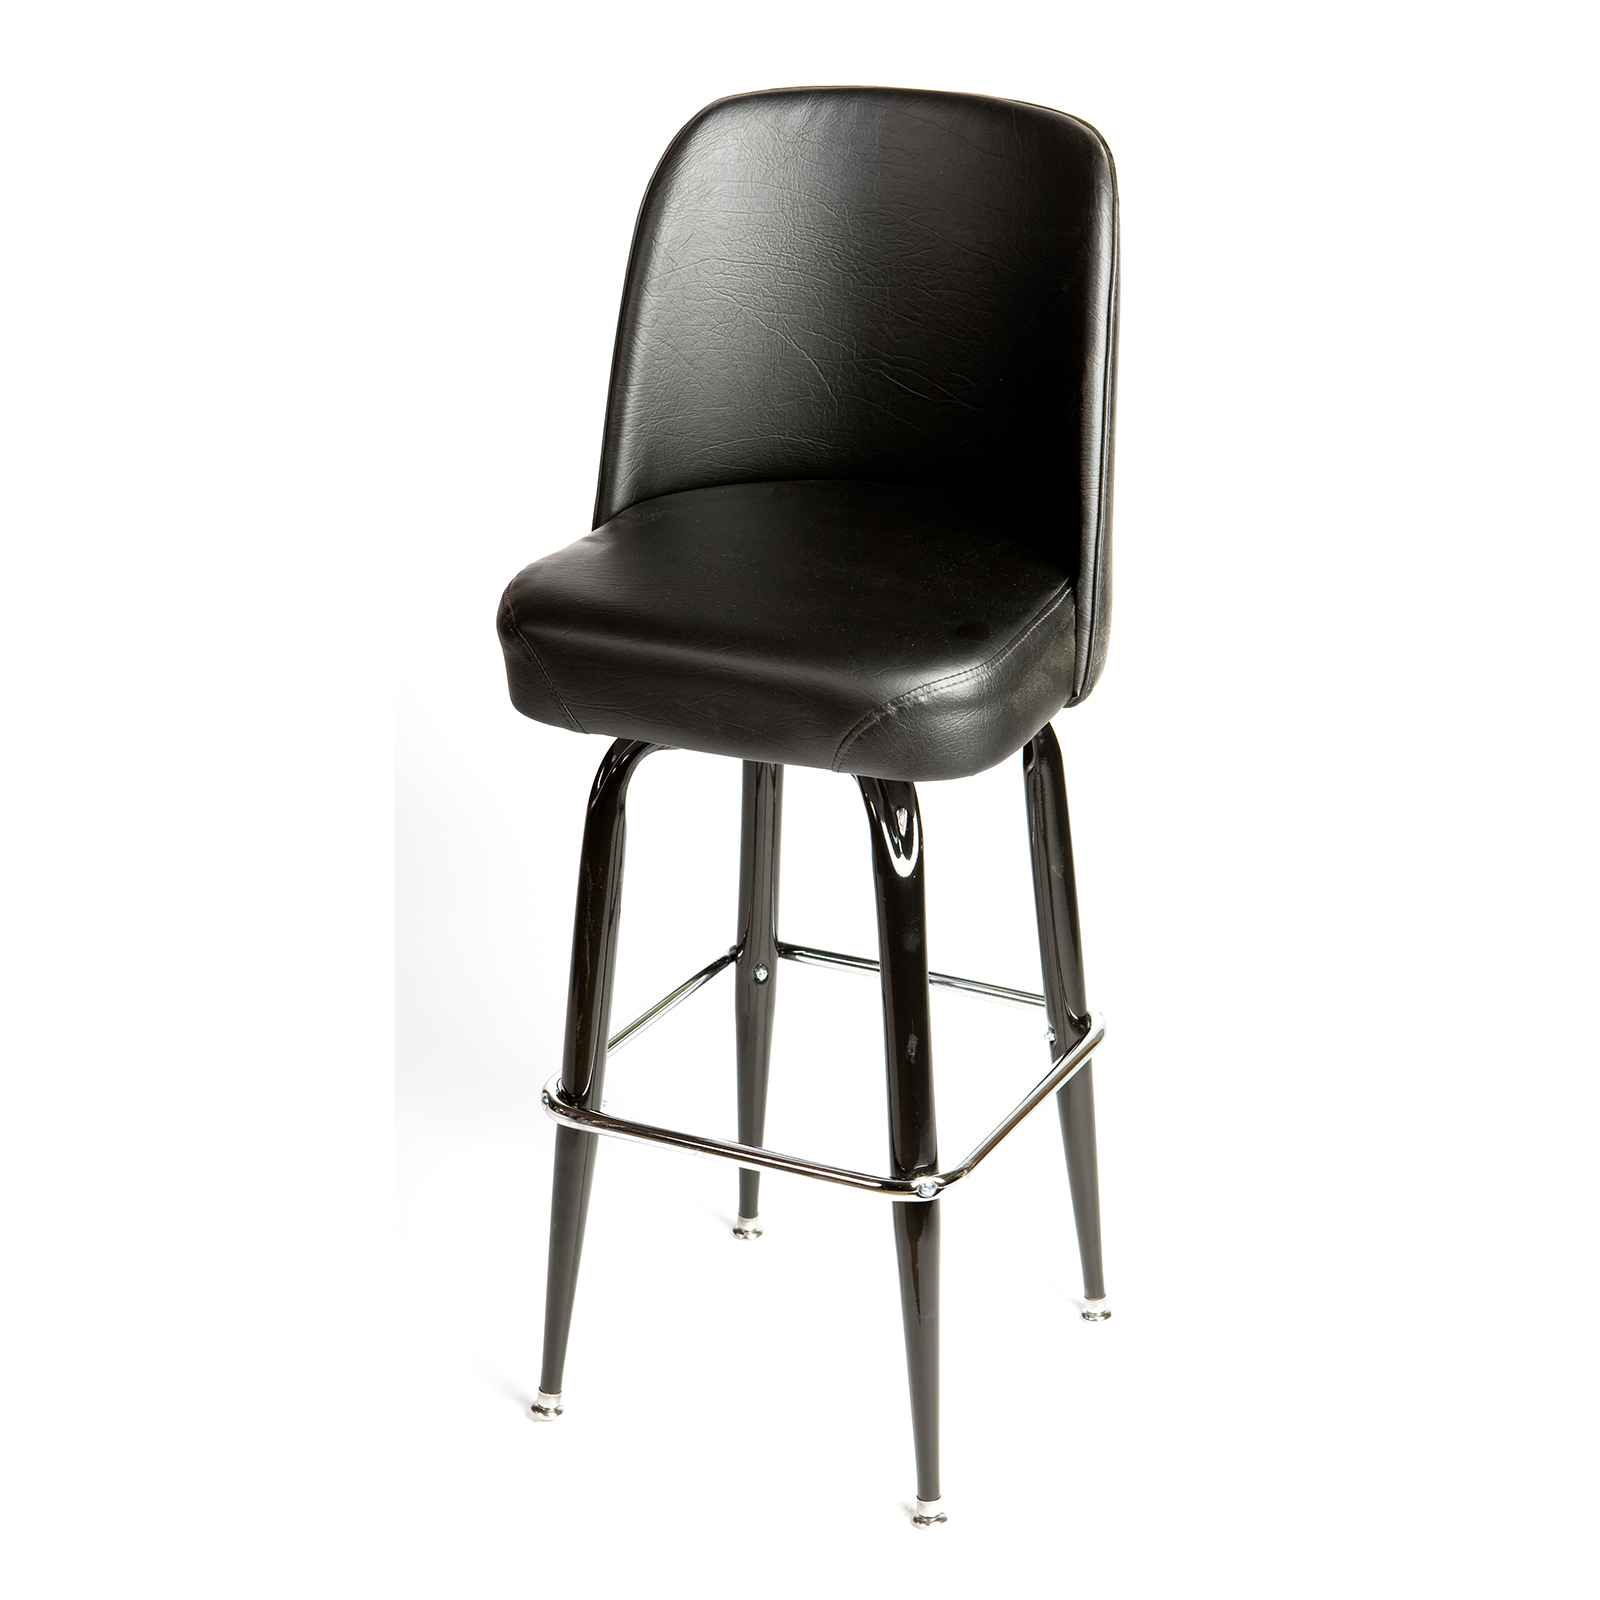 Oak Street SL2133-BLK bar stool, swivel, indoor